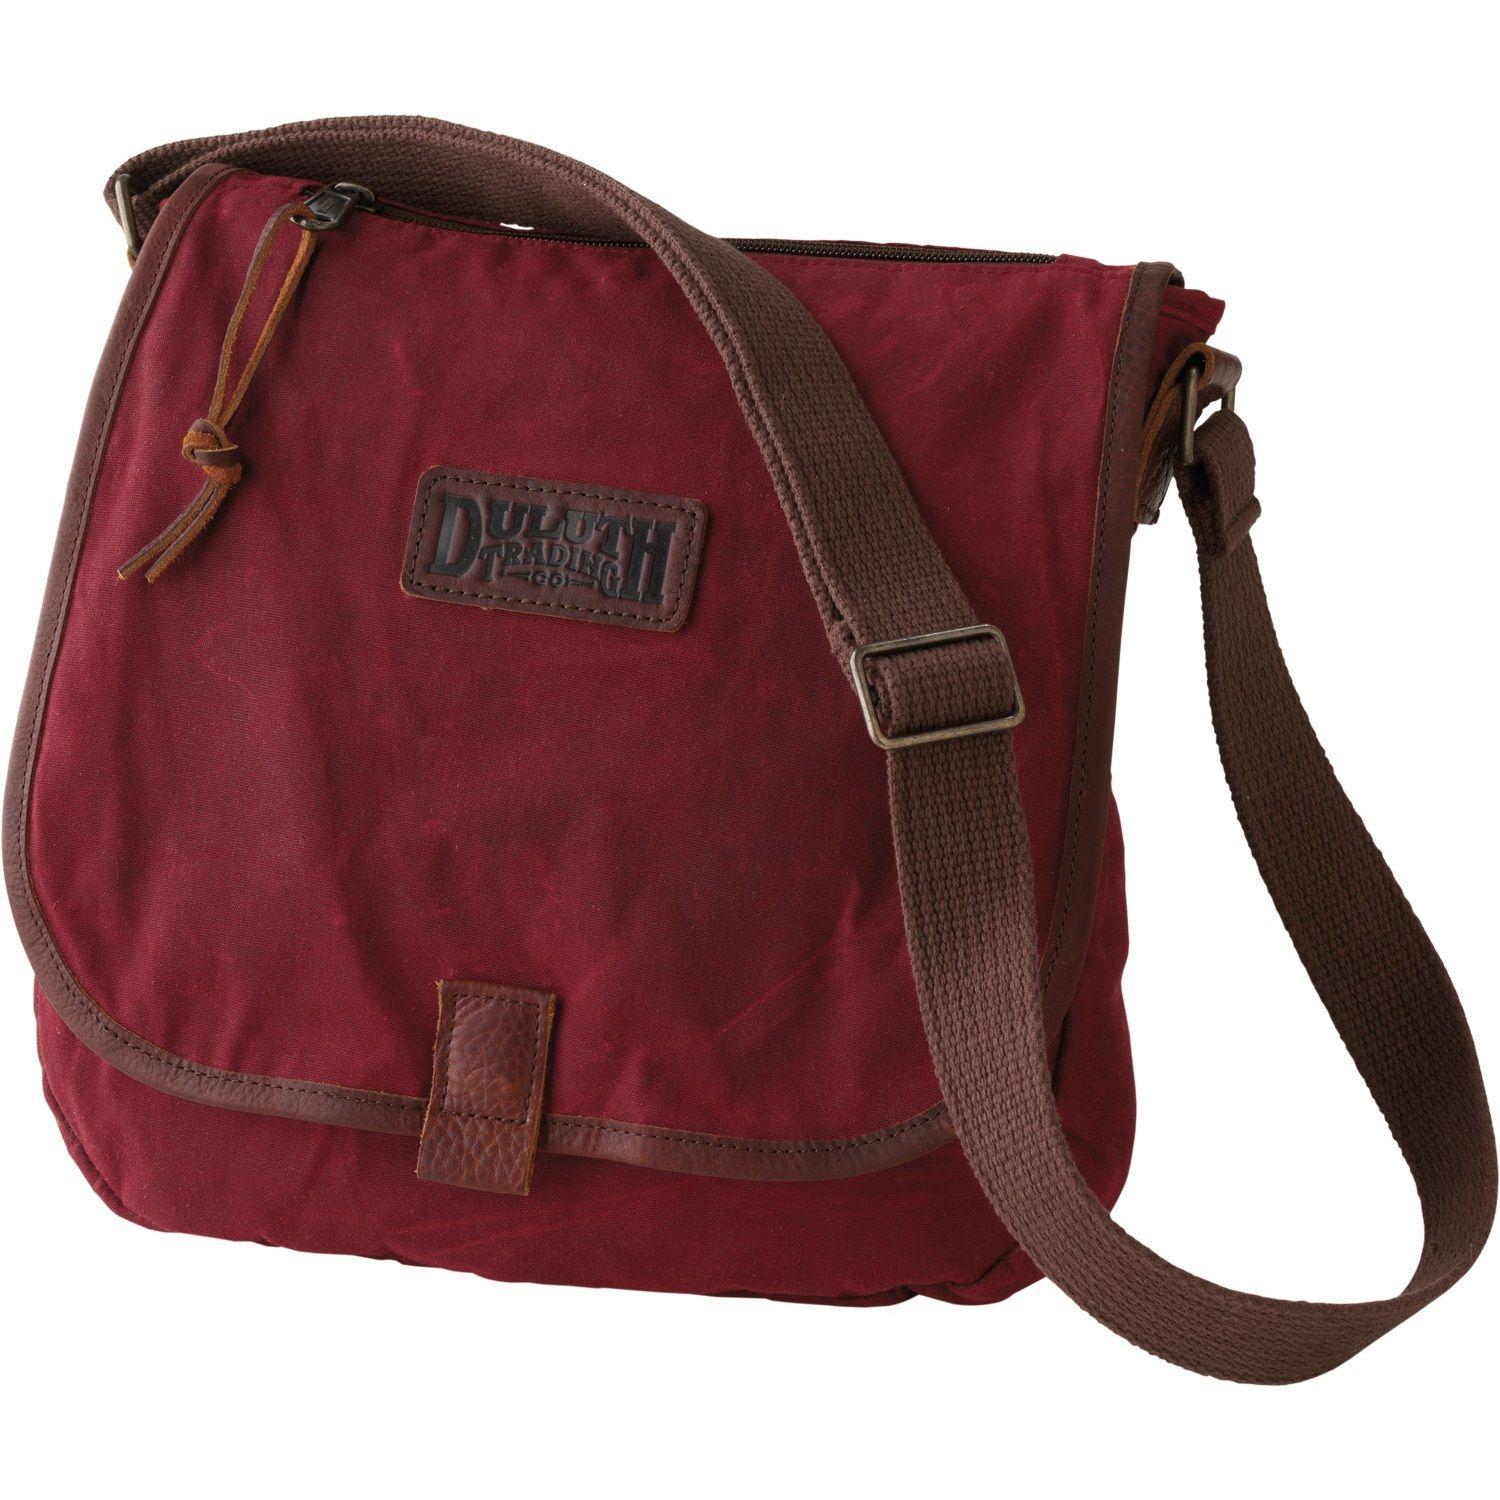 Women s Oil Cloth Sling Bag - Duluth Trading 4f9e395004